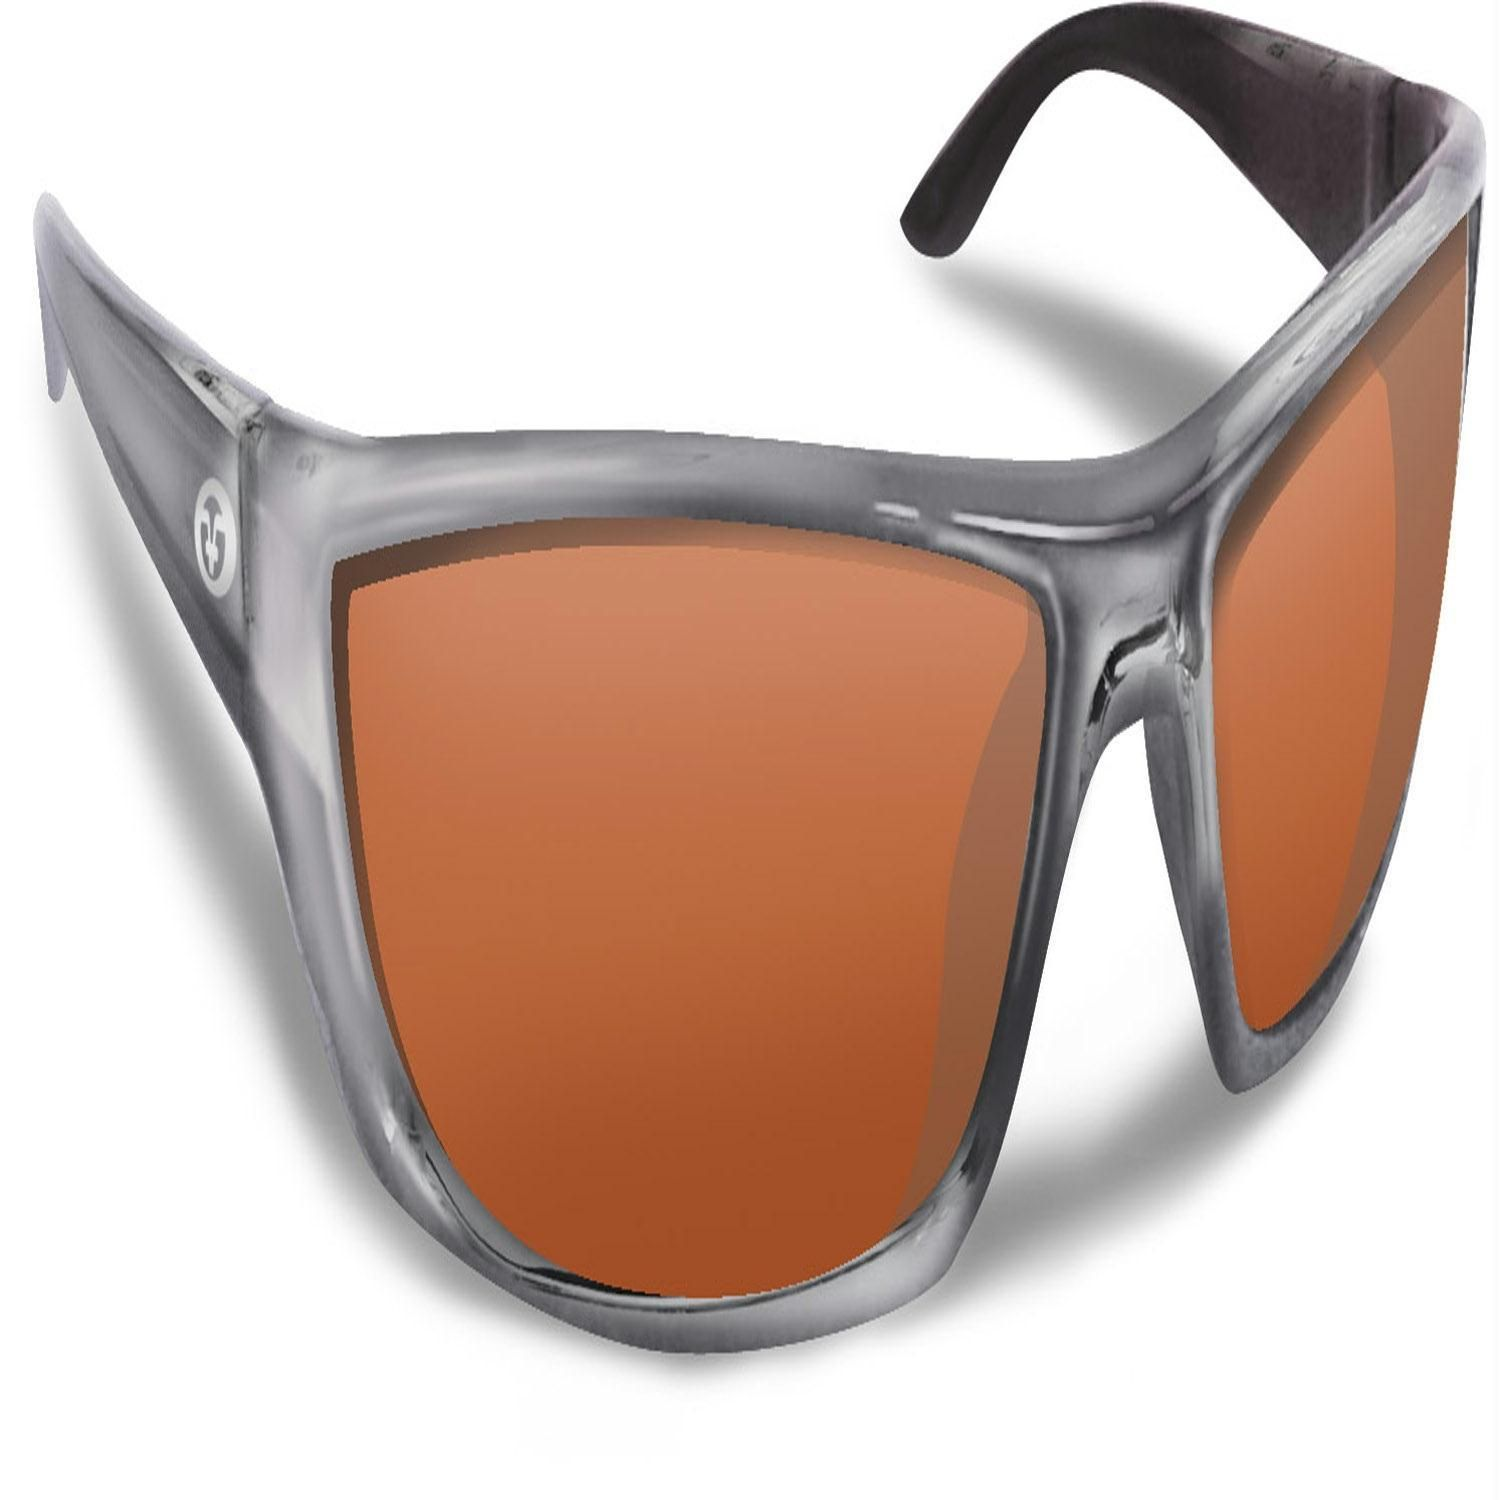 36862fee15a Flying Fisherman Buchanan Crystal Gunmetal w-Copper Sunglass in 2018 ...